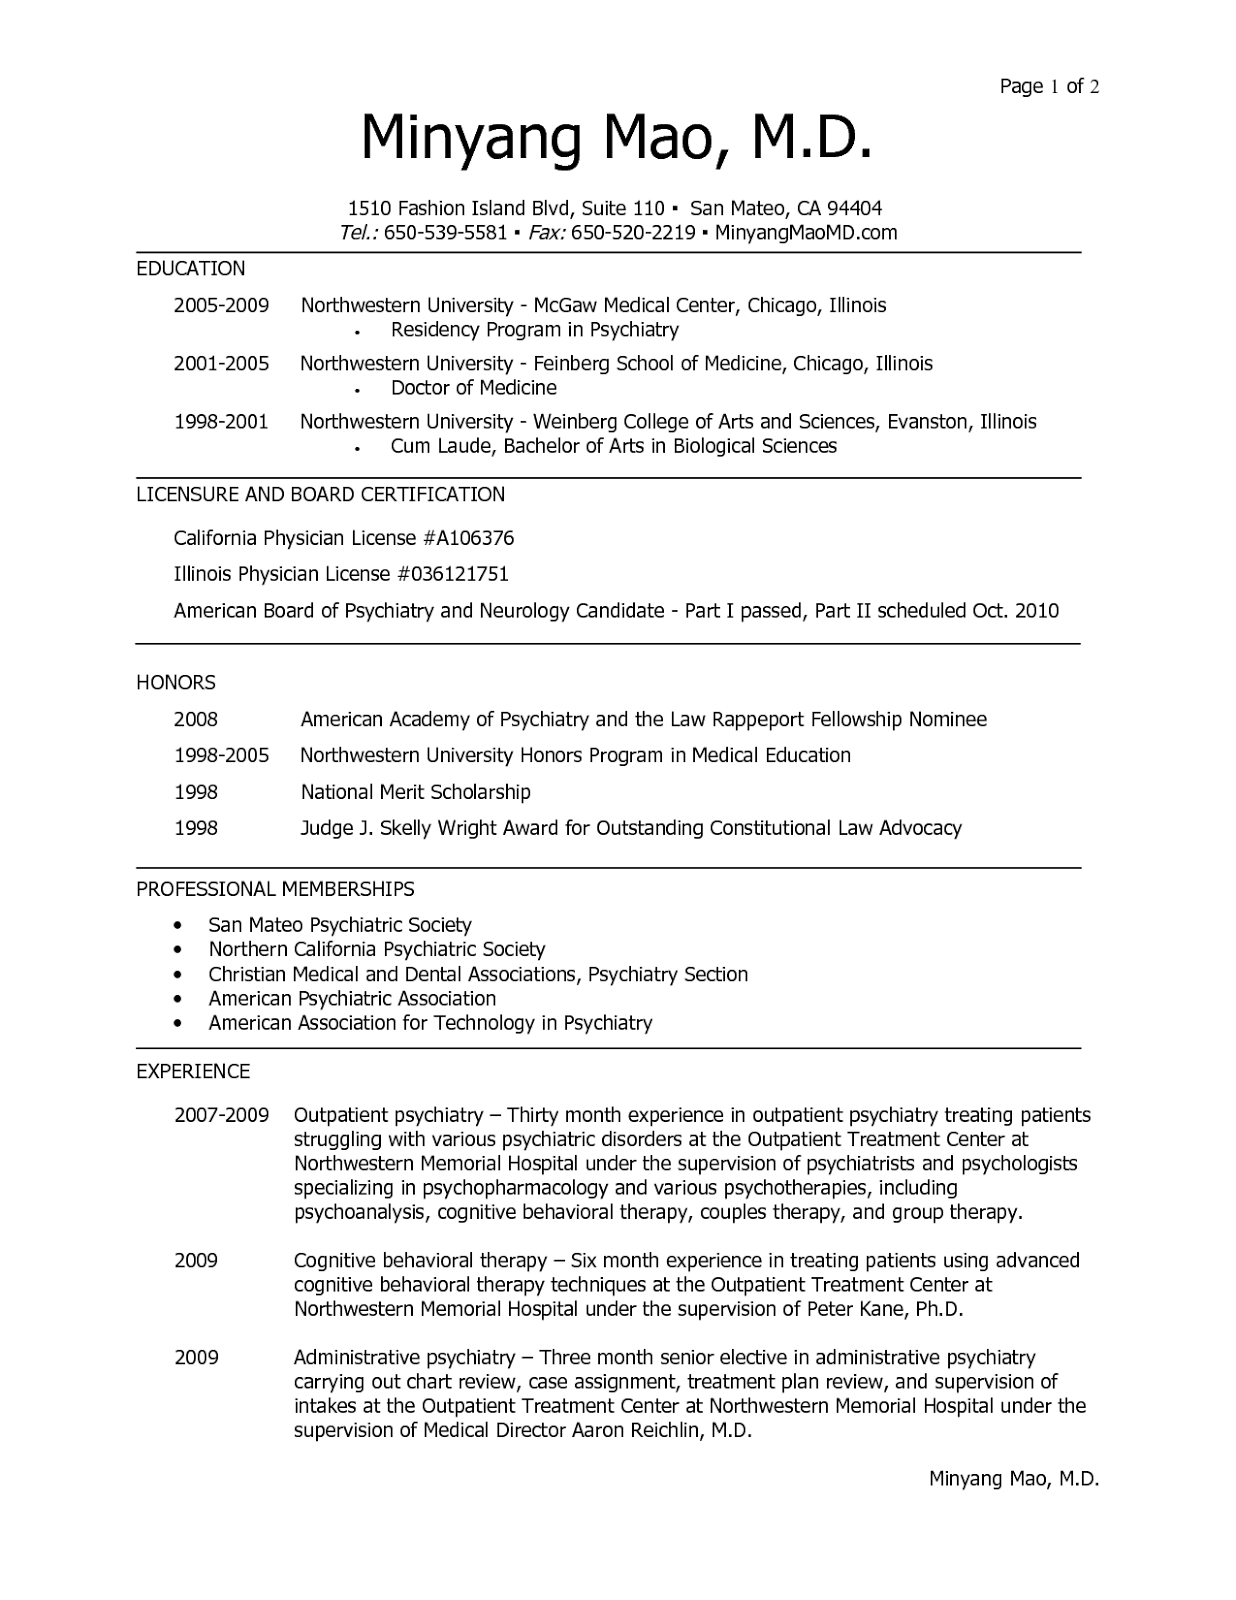 Resume For Medical School resume examples medical school resume template sample of medical assistant resume med Resume For Medical School